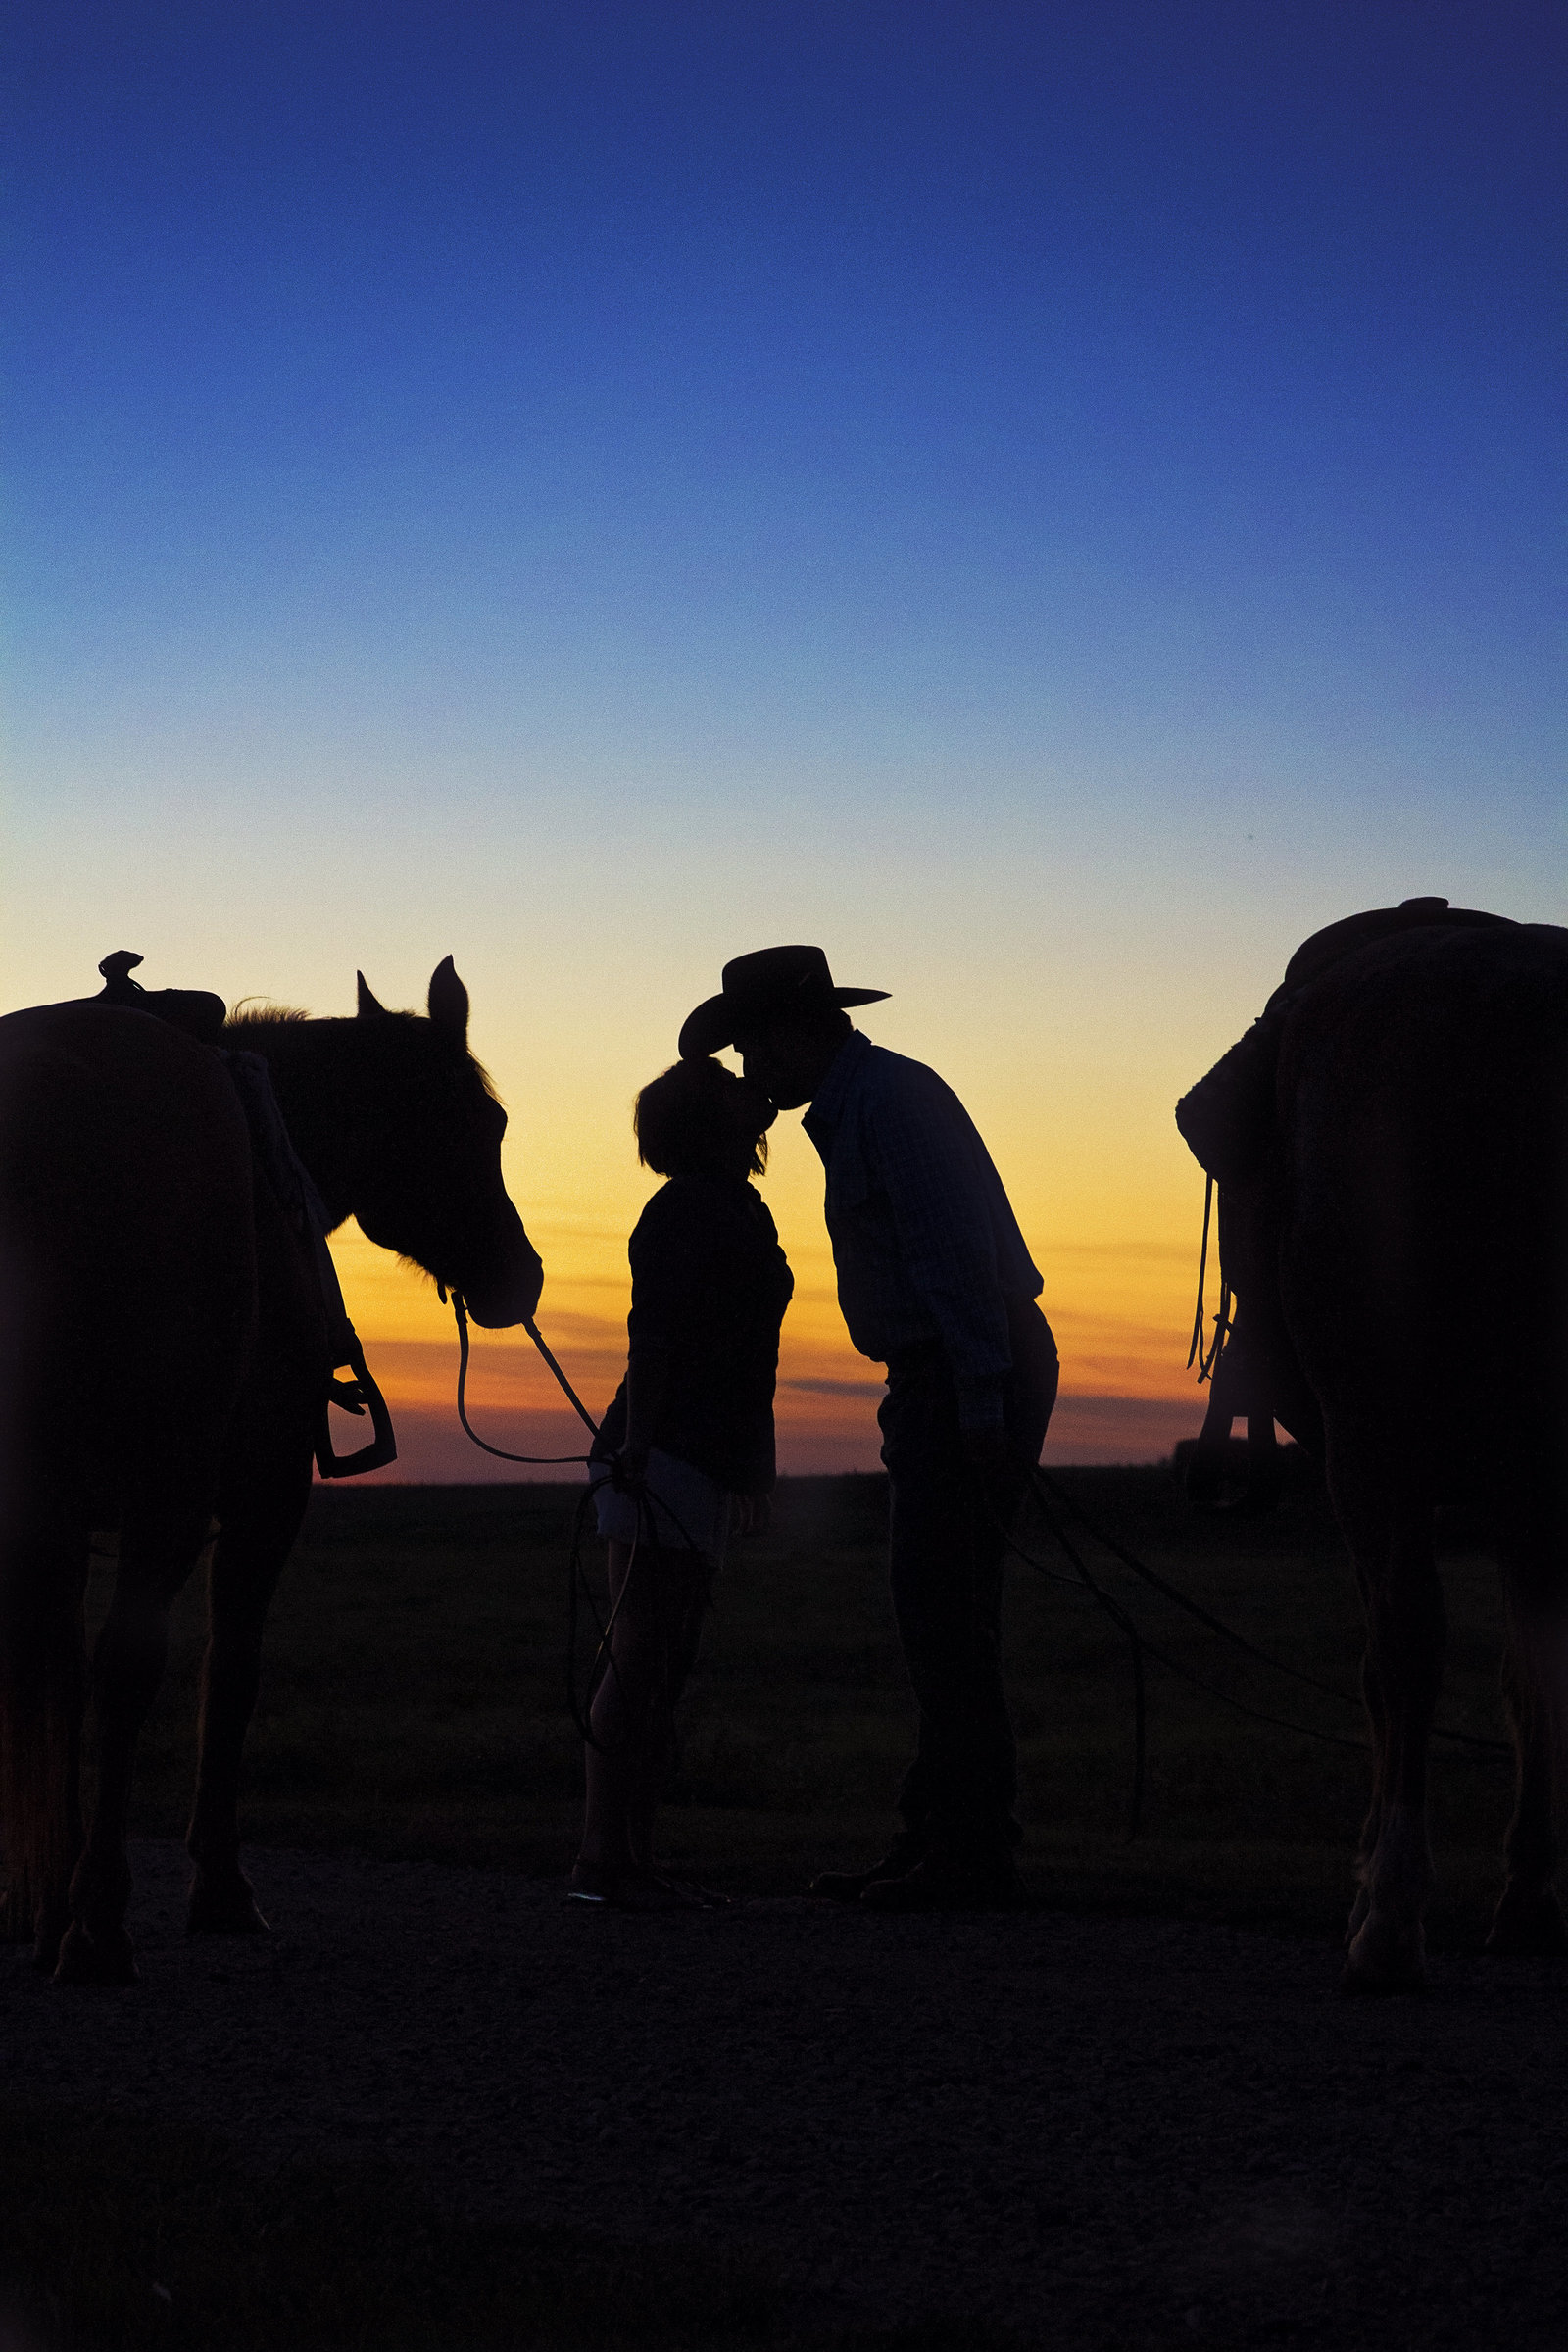 engagement | elizabeth street photography | silhouette |  cowboy | horse | Streeter, ND